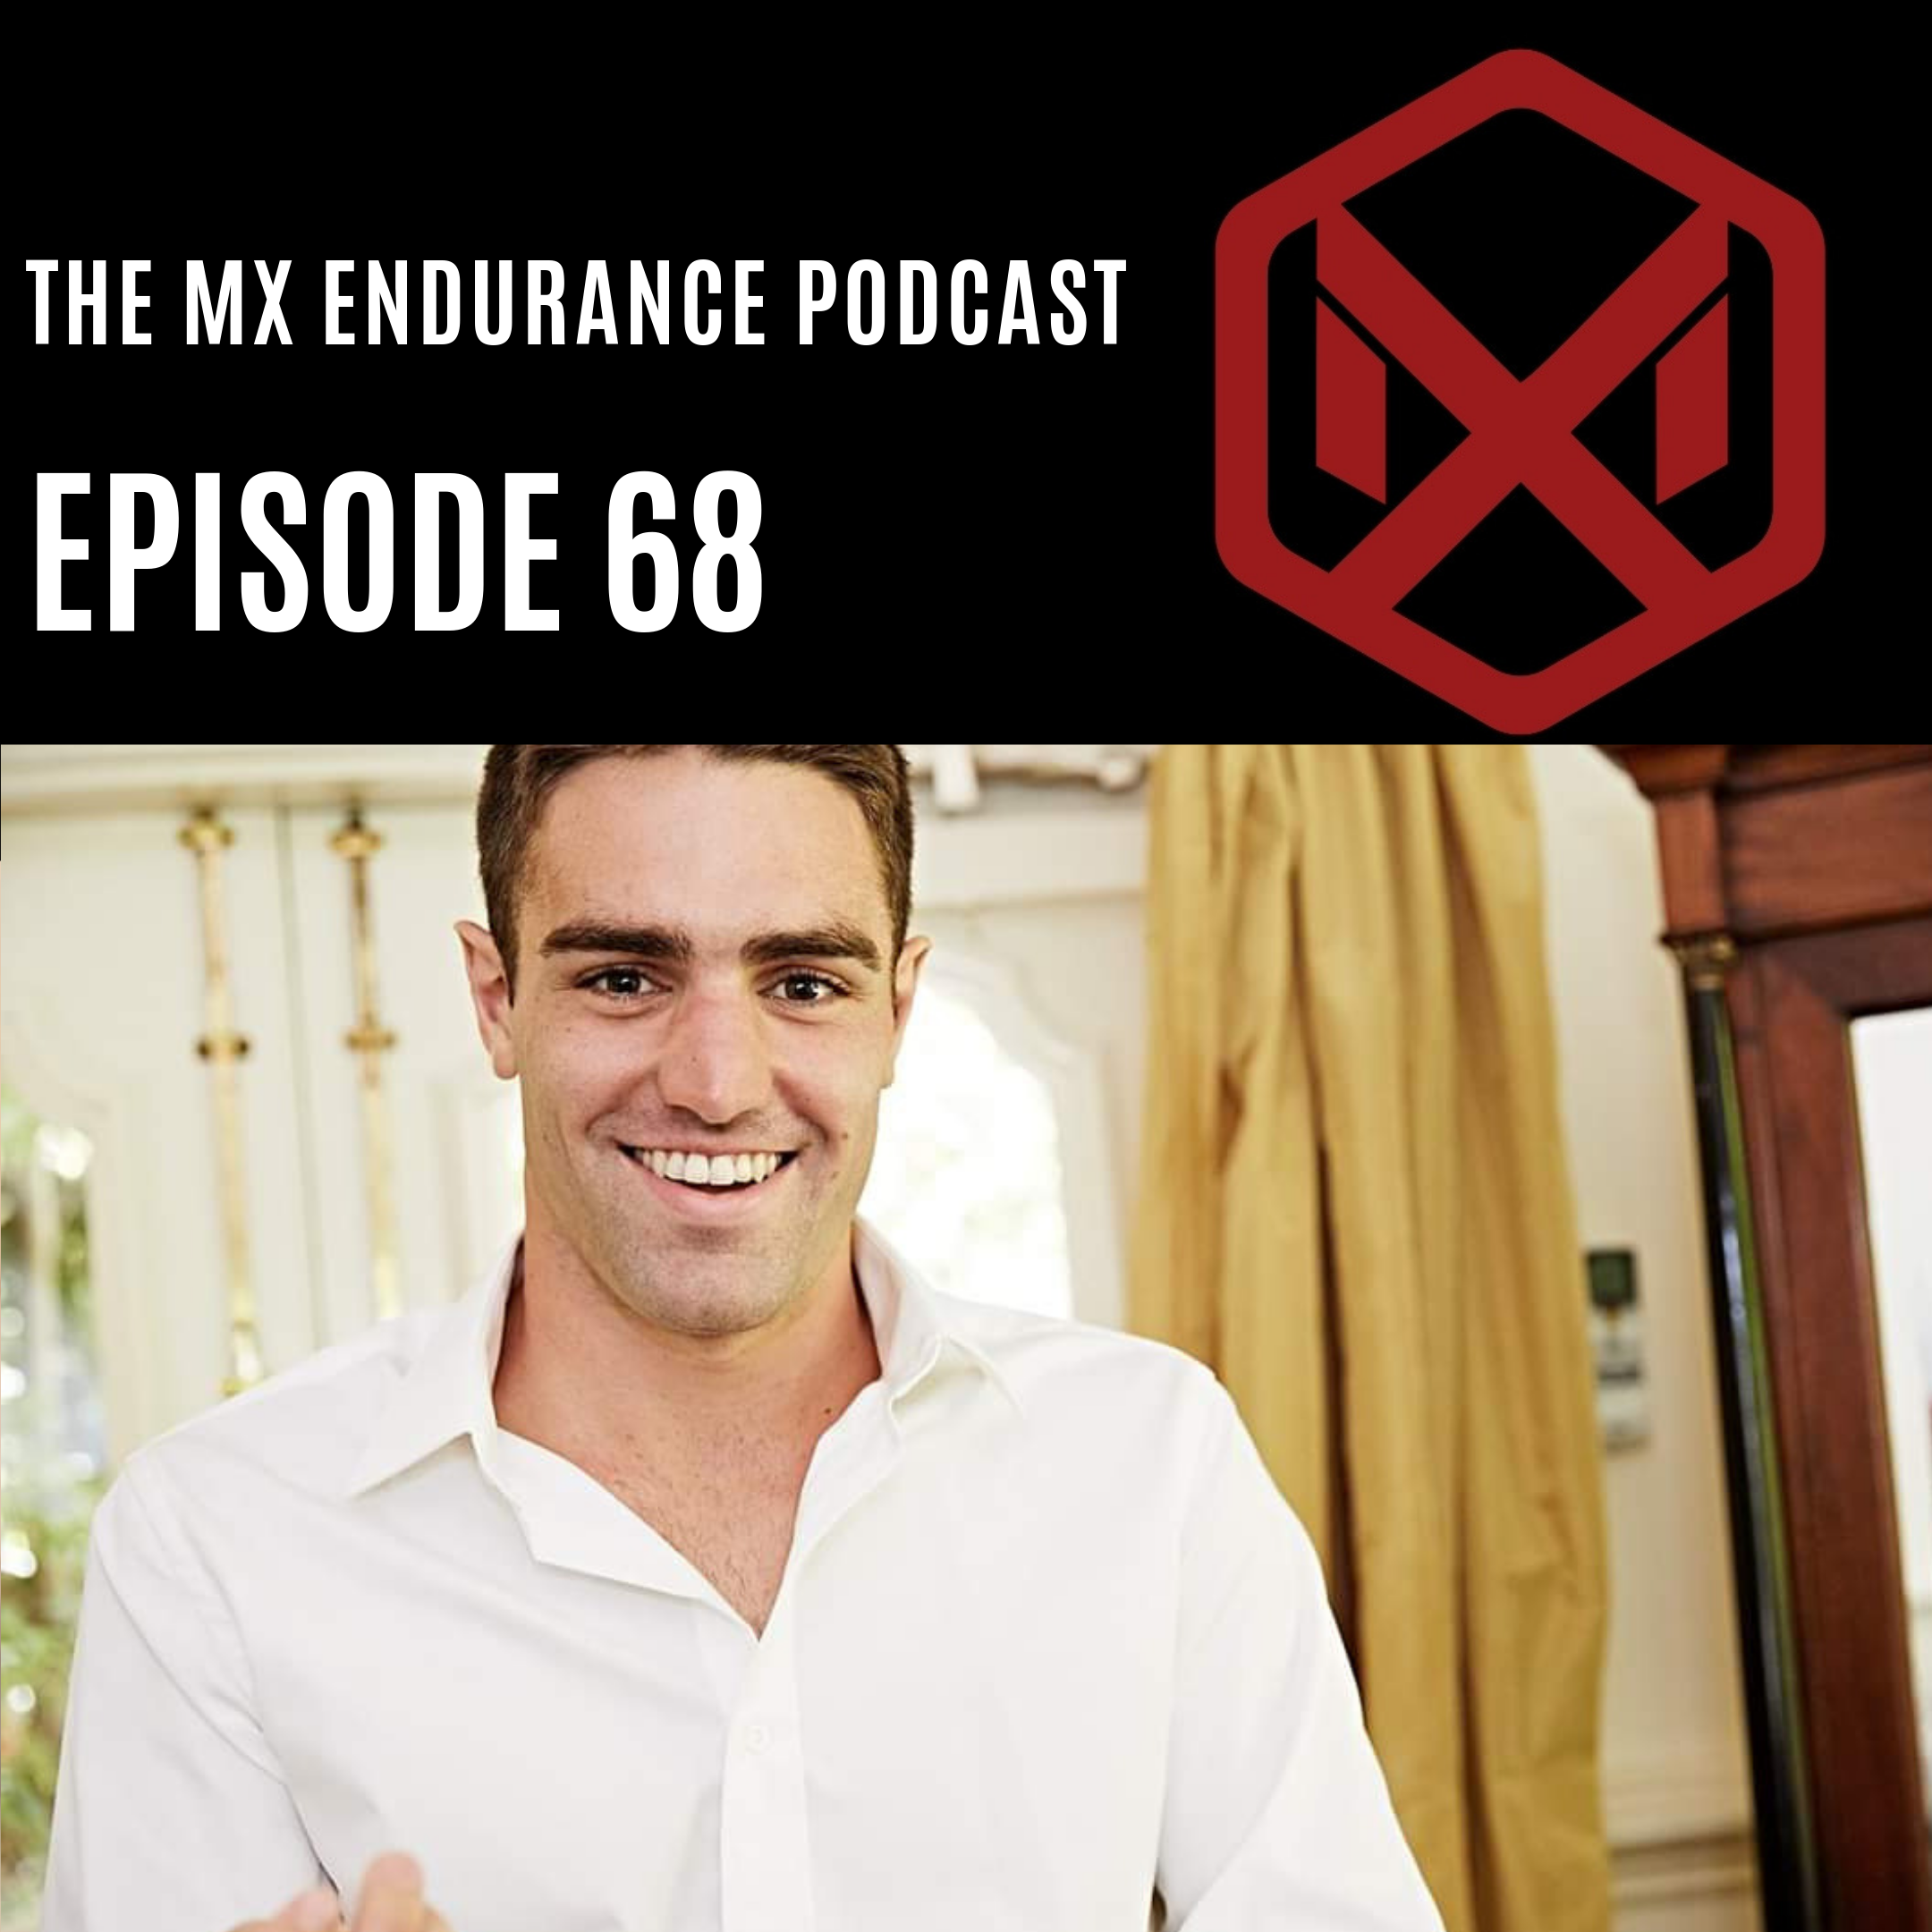 #68 - Effortless Swimming Founder Brenton Ford Talks All About Swimming